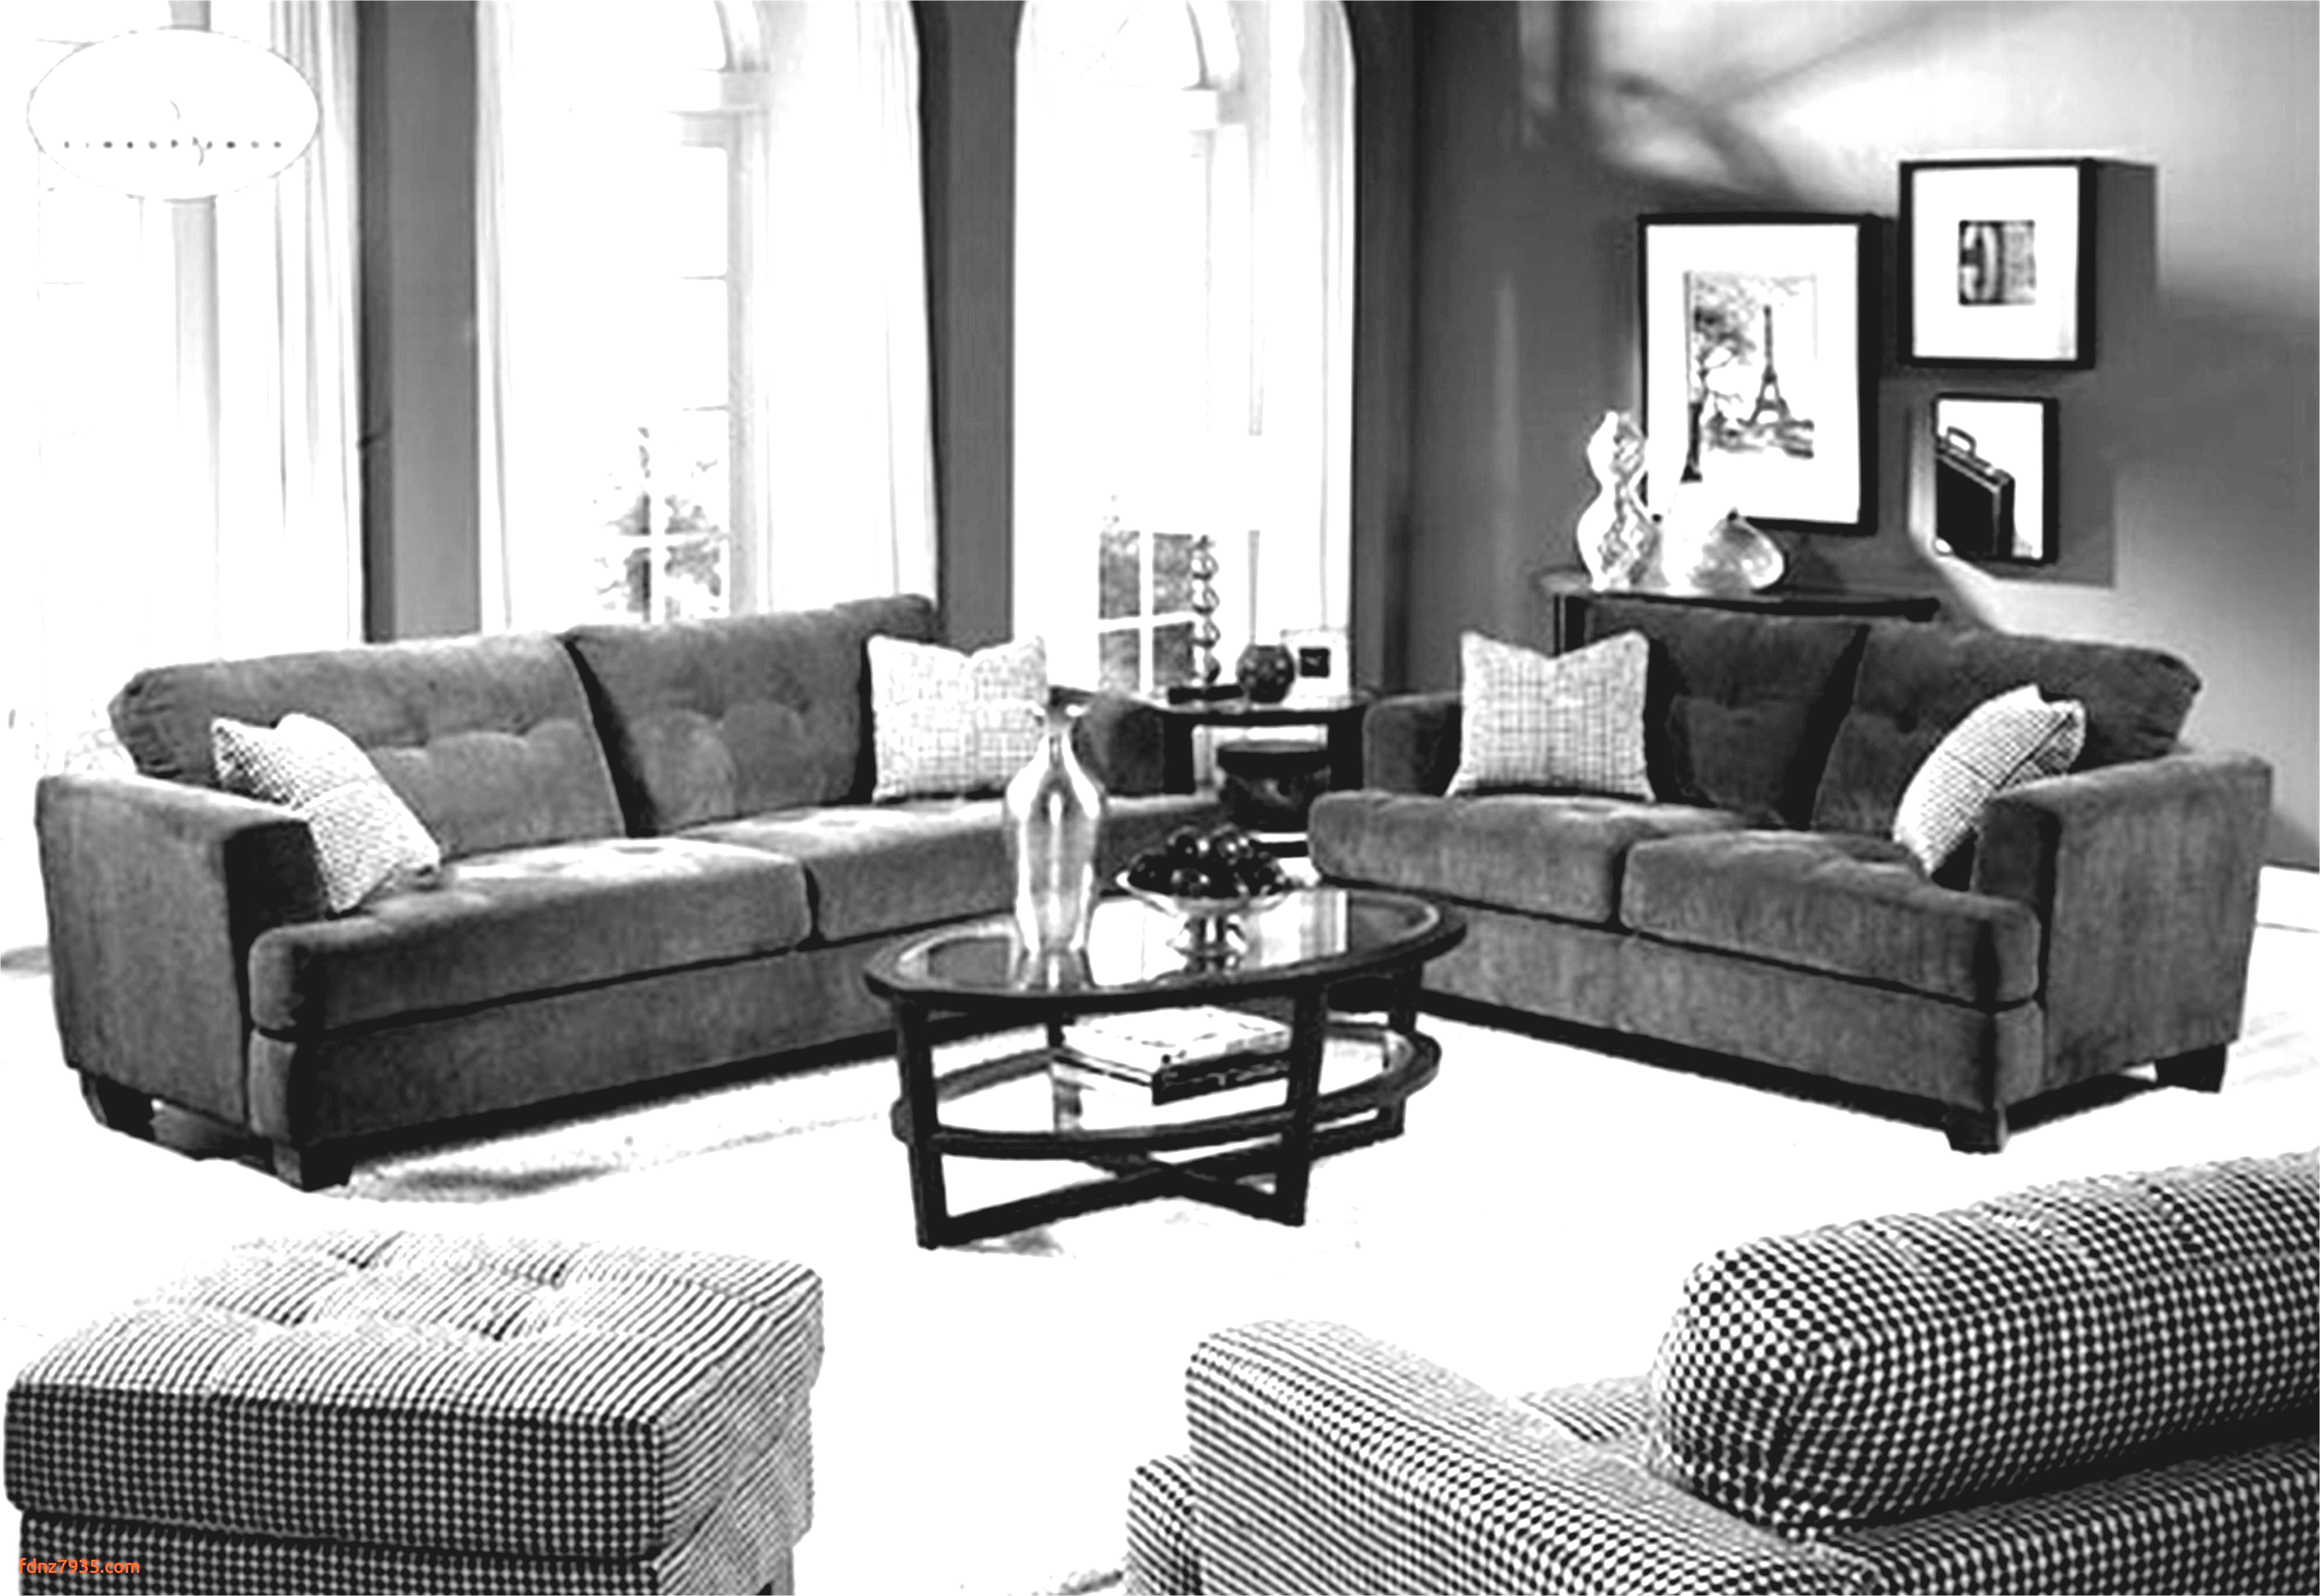 american freight living room furniture new living room decorationeas luxury pin by od provance pinterest sofa